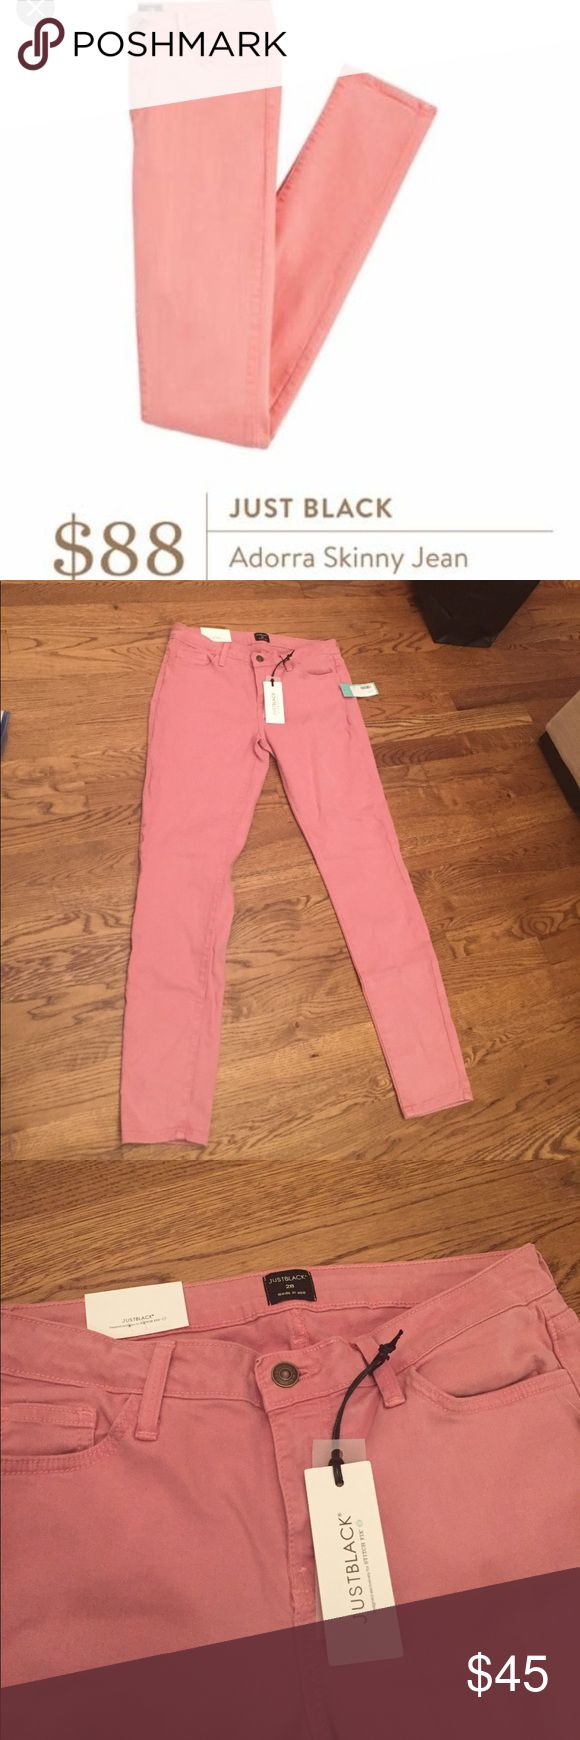 NWT Stitch Fix Just Black Adorra Pink Skinny Jeans Brand new with tags.  Originally $88 on Stitch Fix (see pic from Pinterest and originally Stitch Fix).  Super cute color!!  Make me an offer!! Stitch Fix Pants Skinny